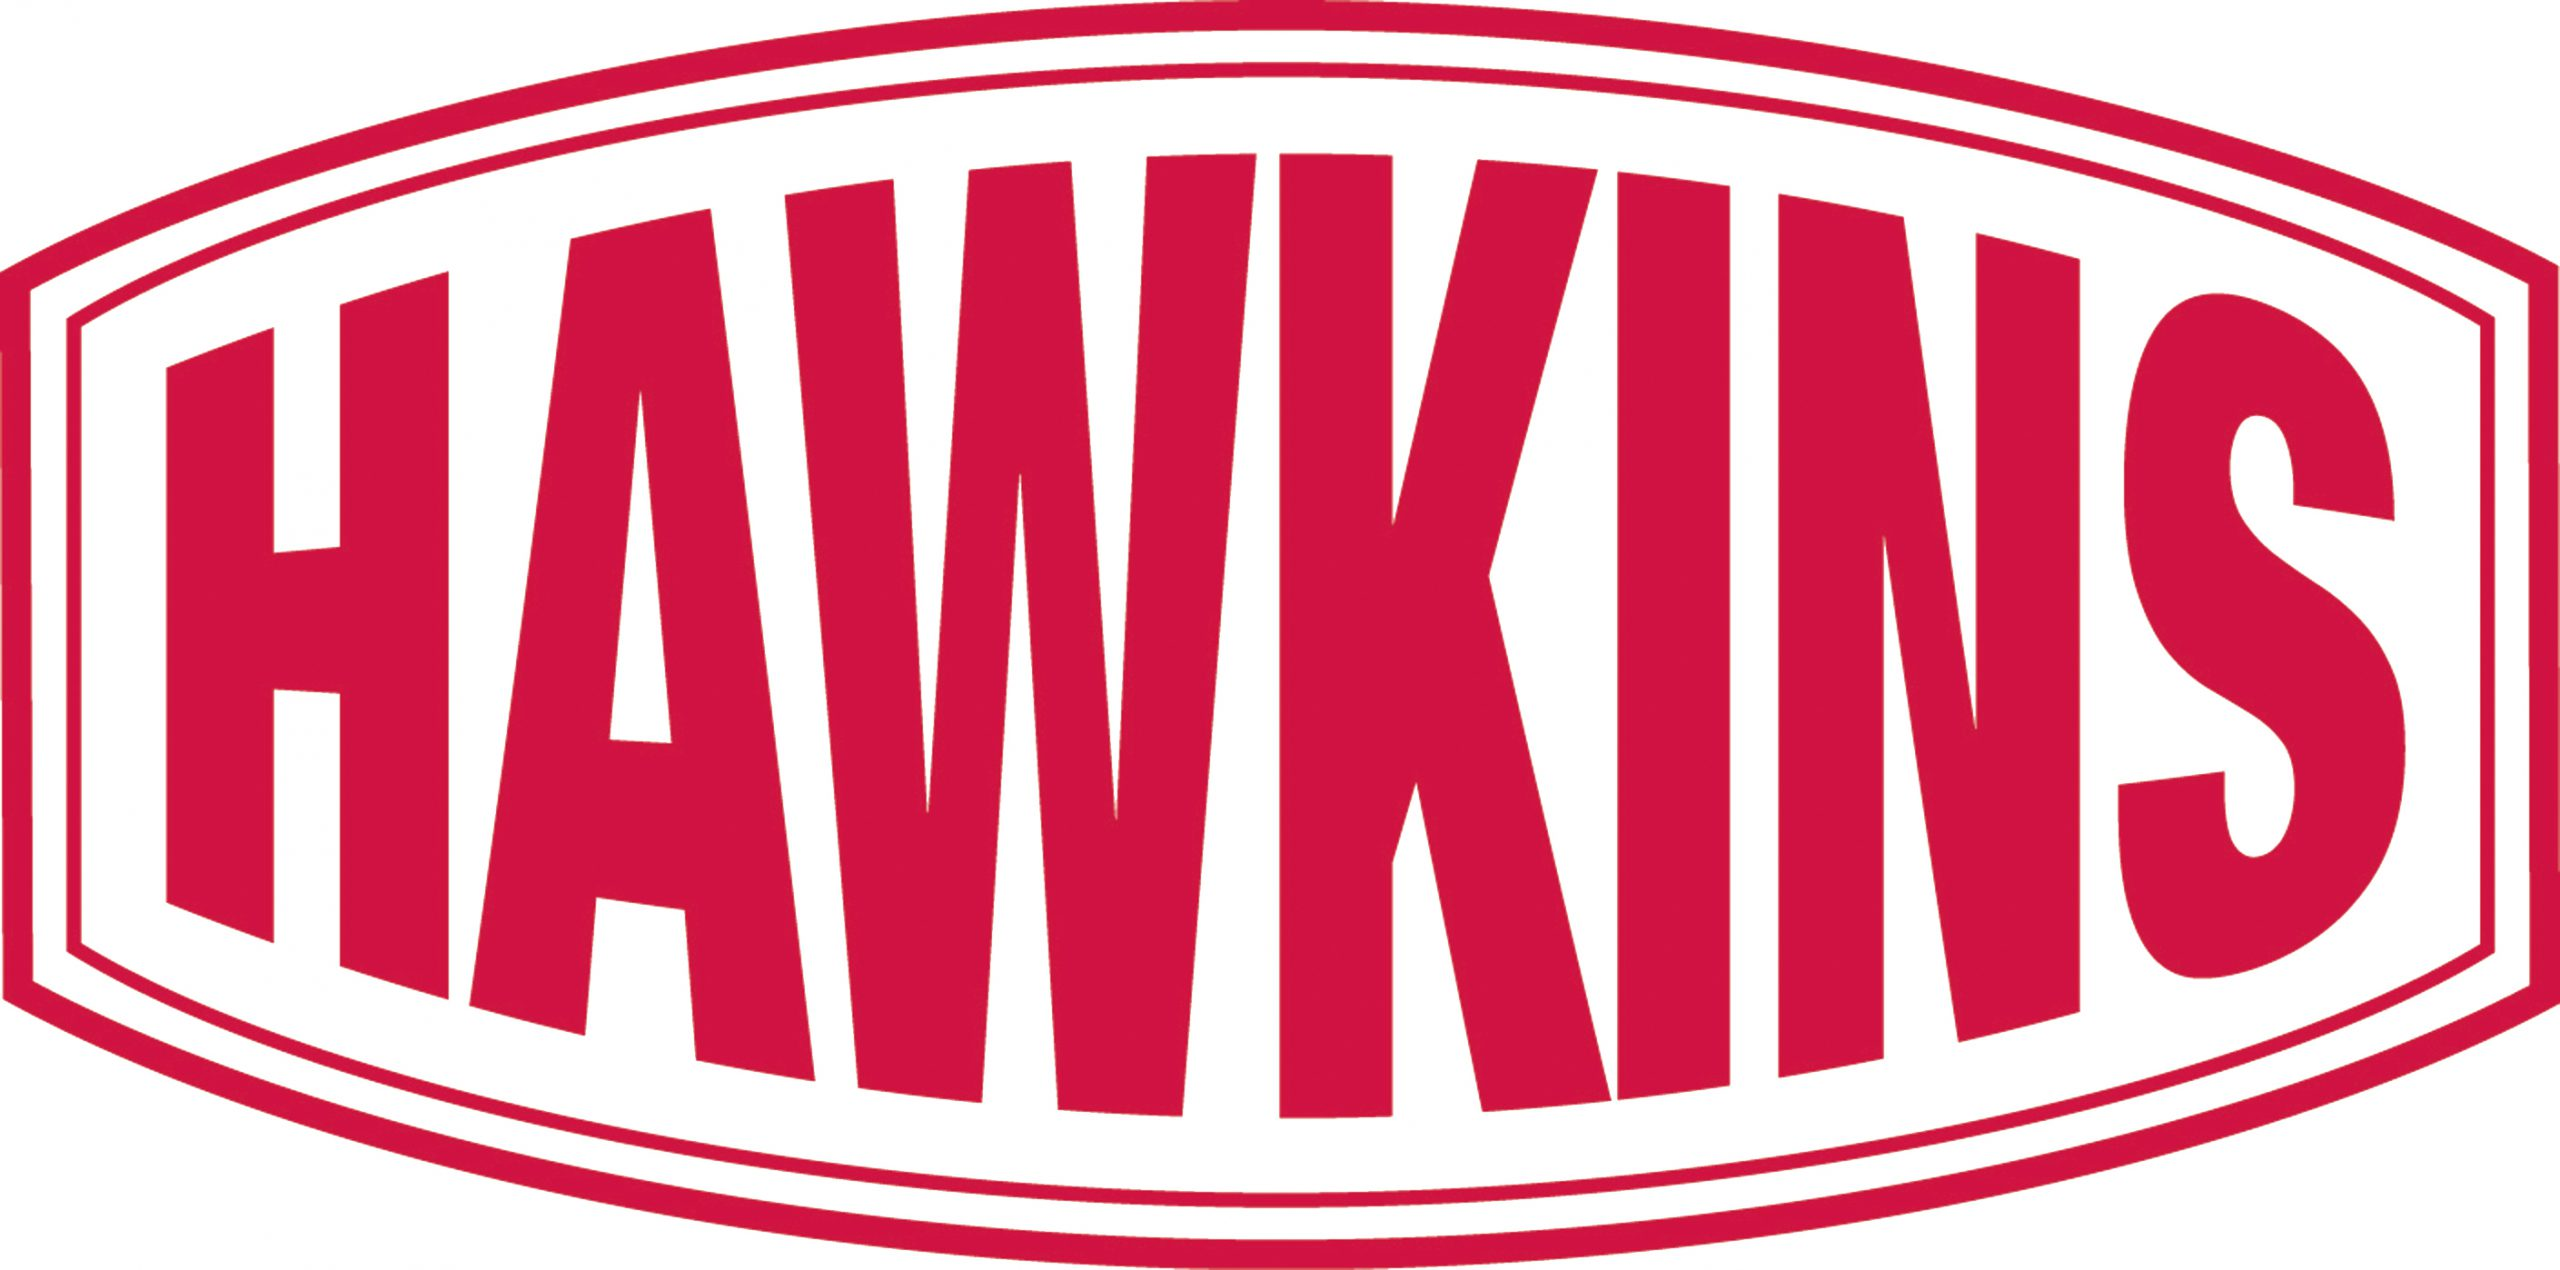 Hawkins-300-no-corners-all-transparent-jpeg